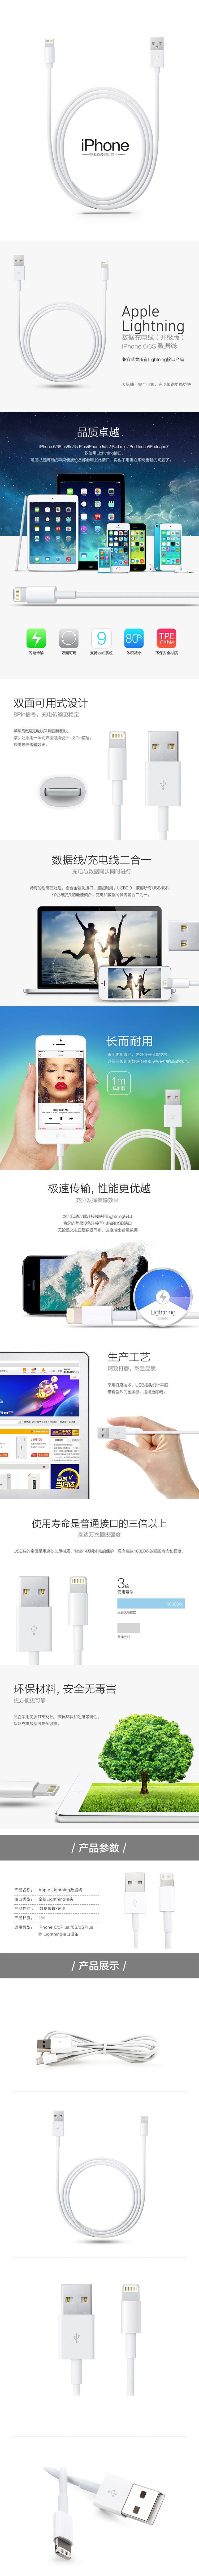 iphone5/6/6s苹果高速数据线